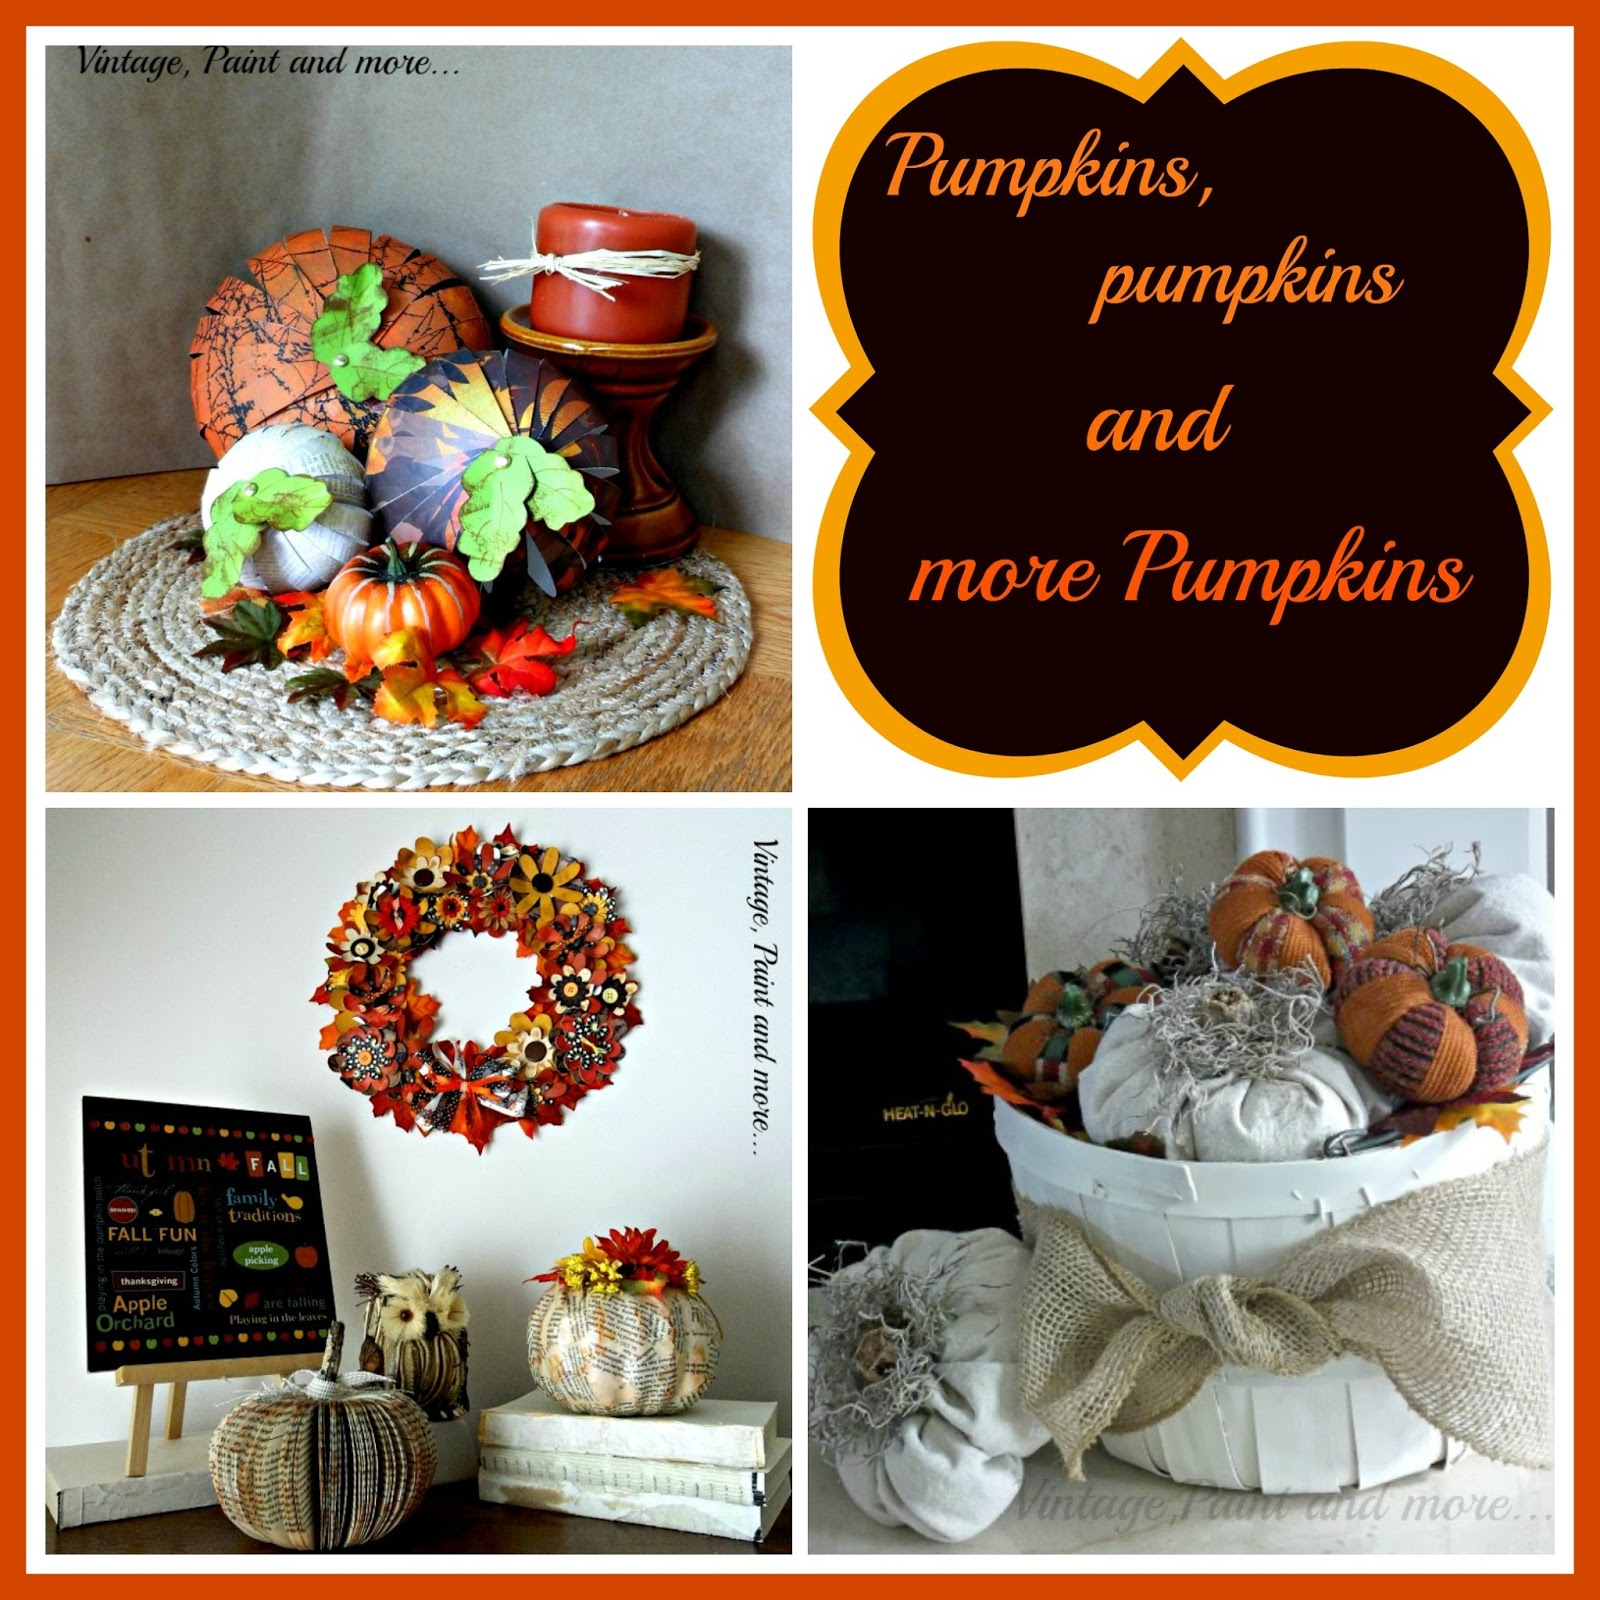 Vintage, Paint and more... Roundup of Crafted Pumpkins